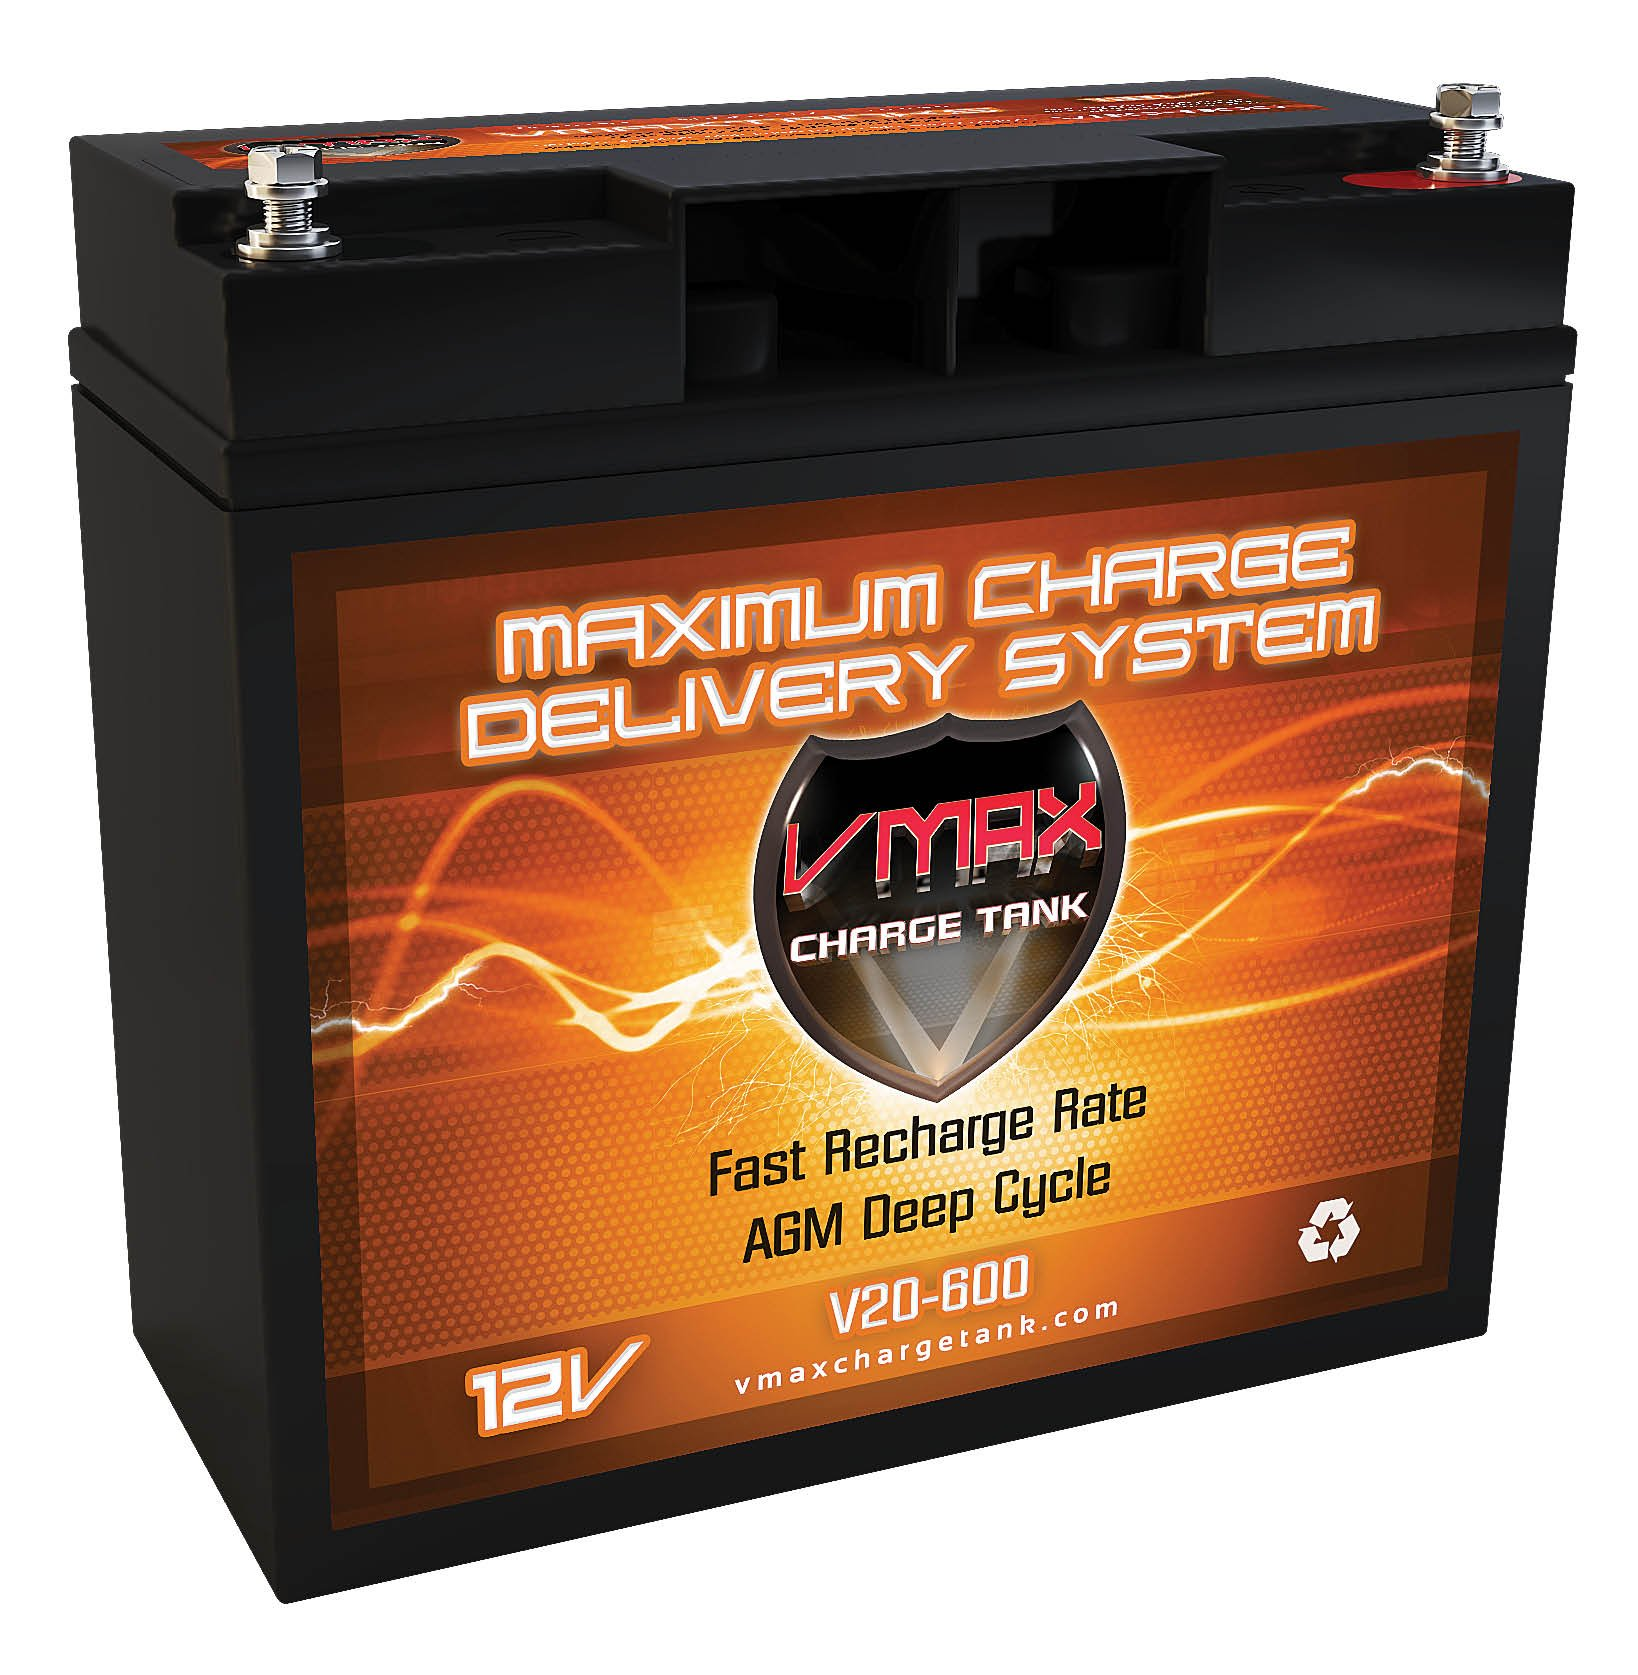 VMAX600 AGM Group 1/2 U1 Deep Cycle Battery Replacement for Black & Decker 90508-11 Lawn Mower 12V 20AH Scooter Battery